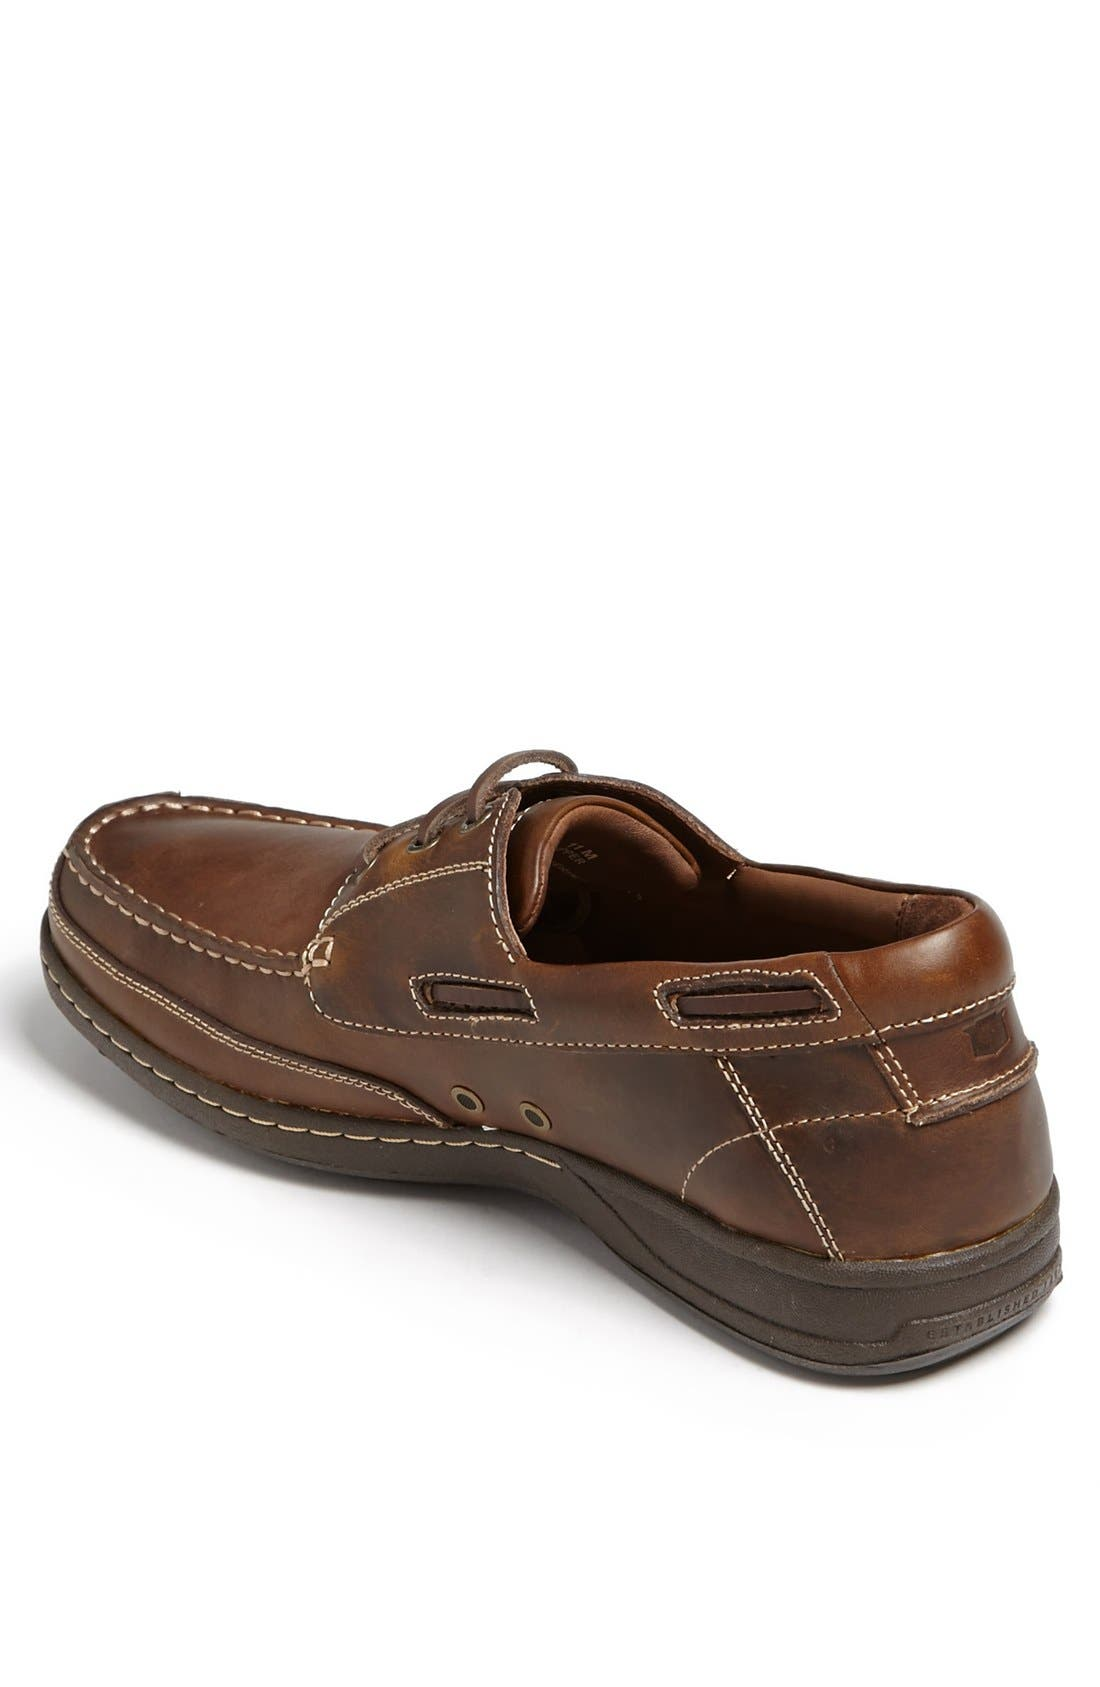 Alternate Image 2  - Florsheim 'Lakeside LX' Boat Shoe